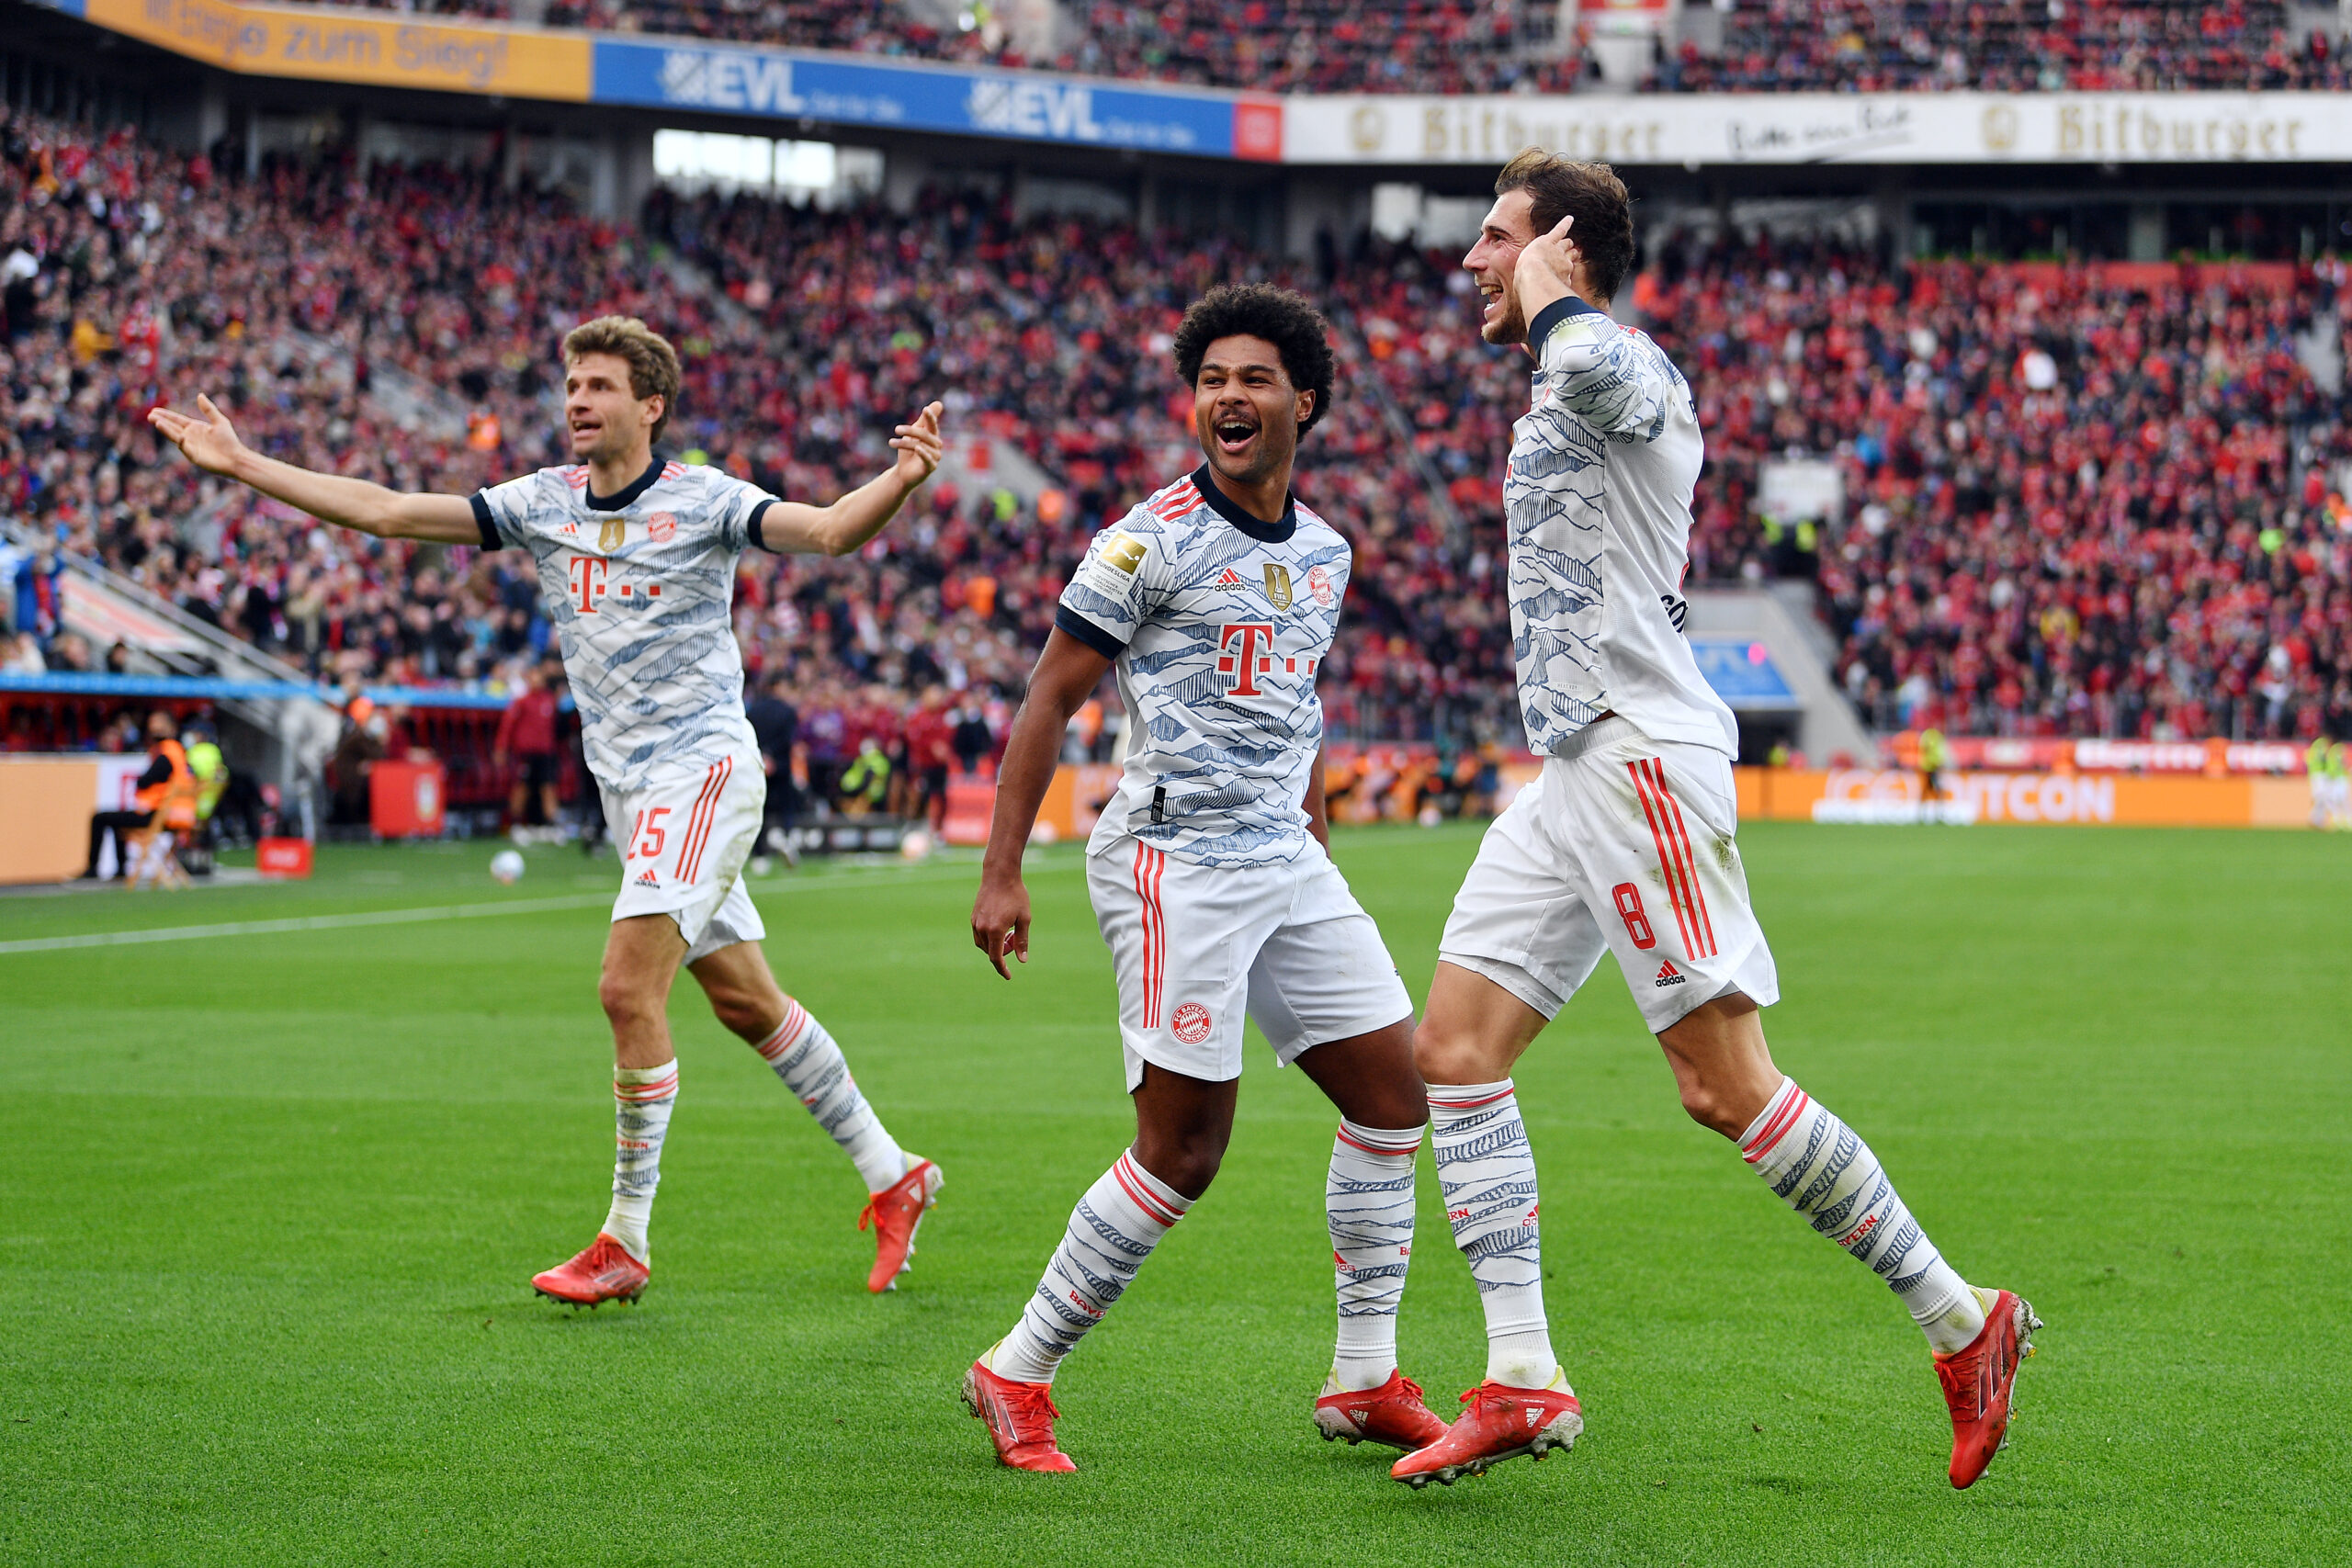 FC Bayern München domina a gusto y placer. Foto: Getty Images.